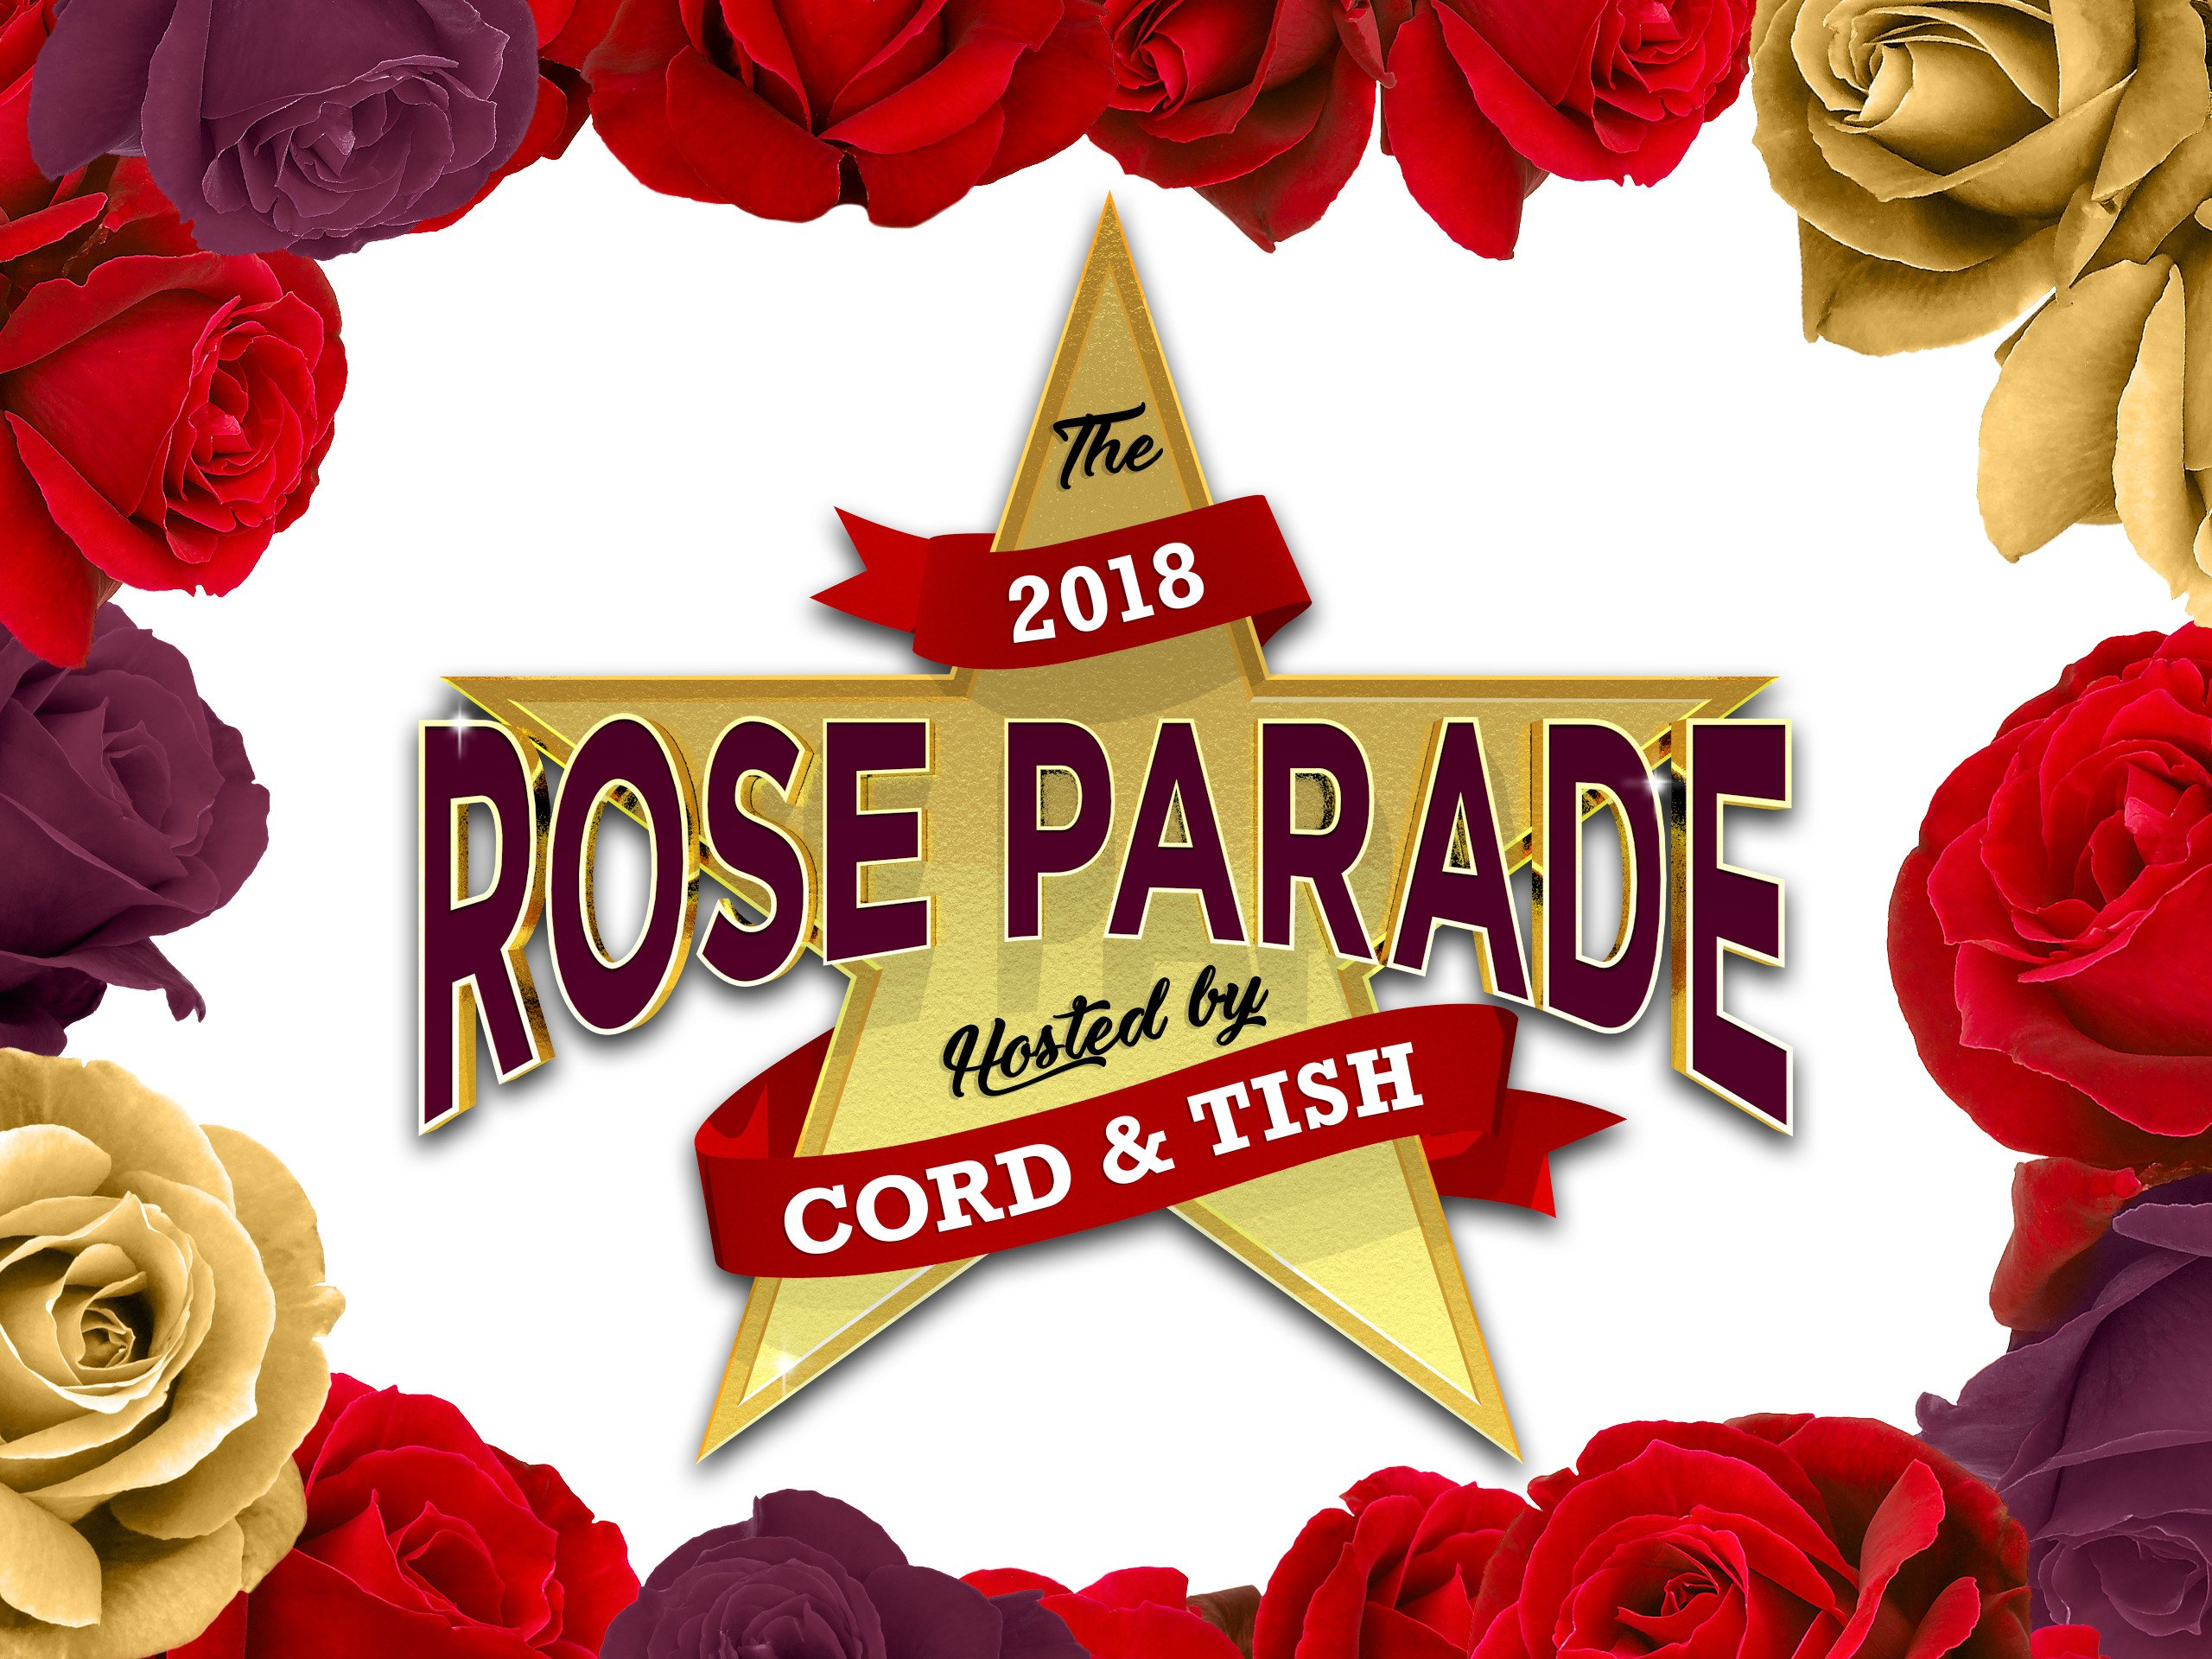 The 2018 Rose Parade Hosted by Cord & Tish - 2018